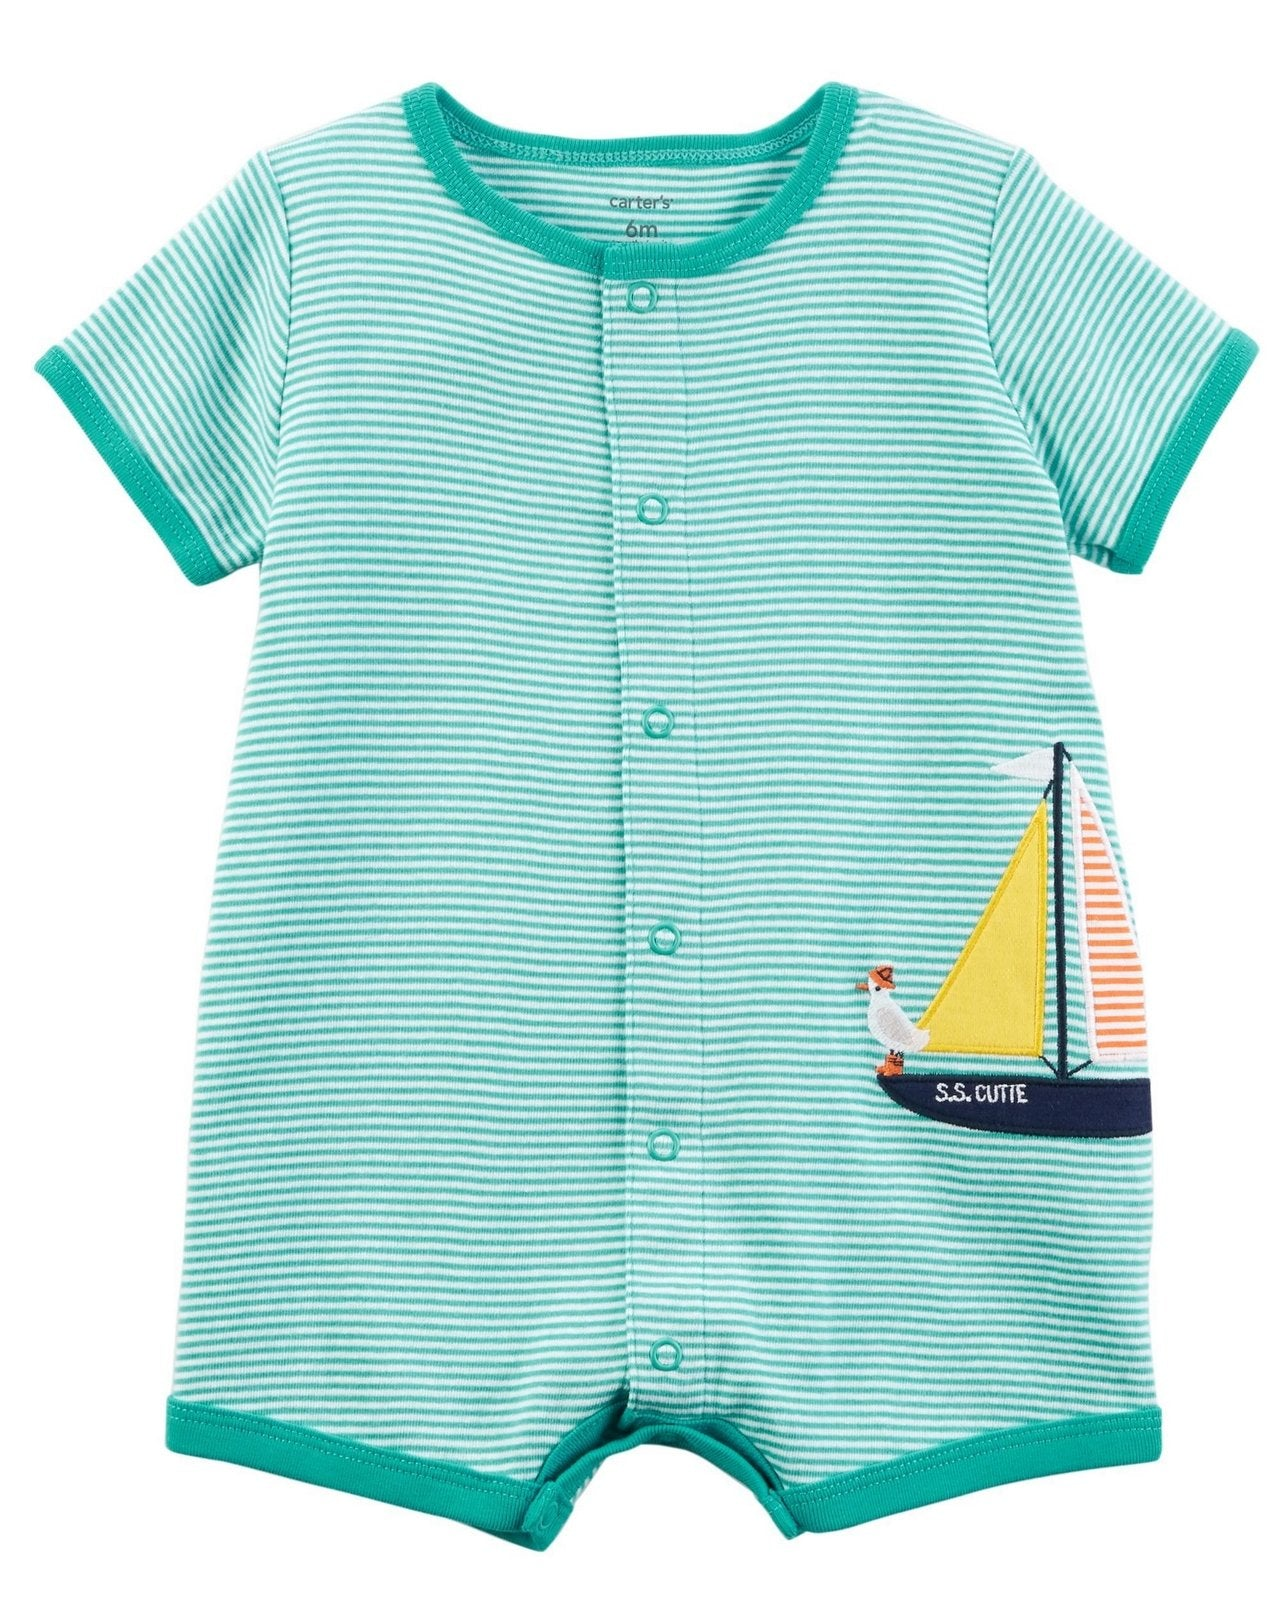 Carter's Sailboat Snap-Up Cotton Romper  Modelo 118H899